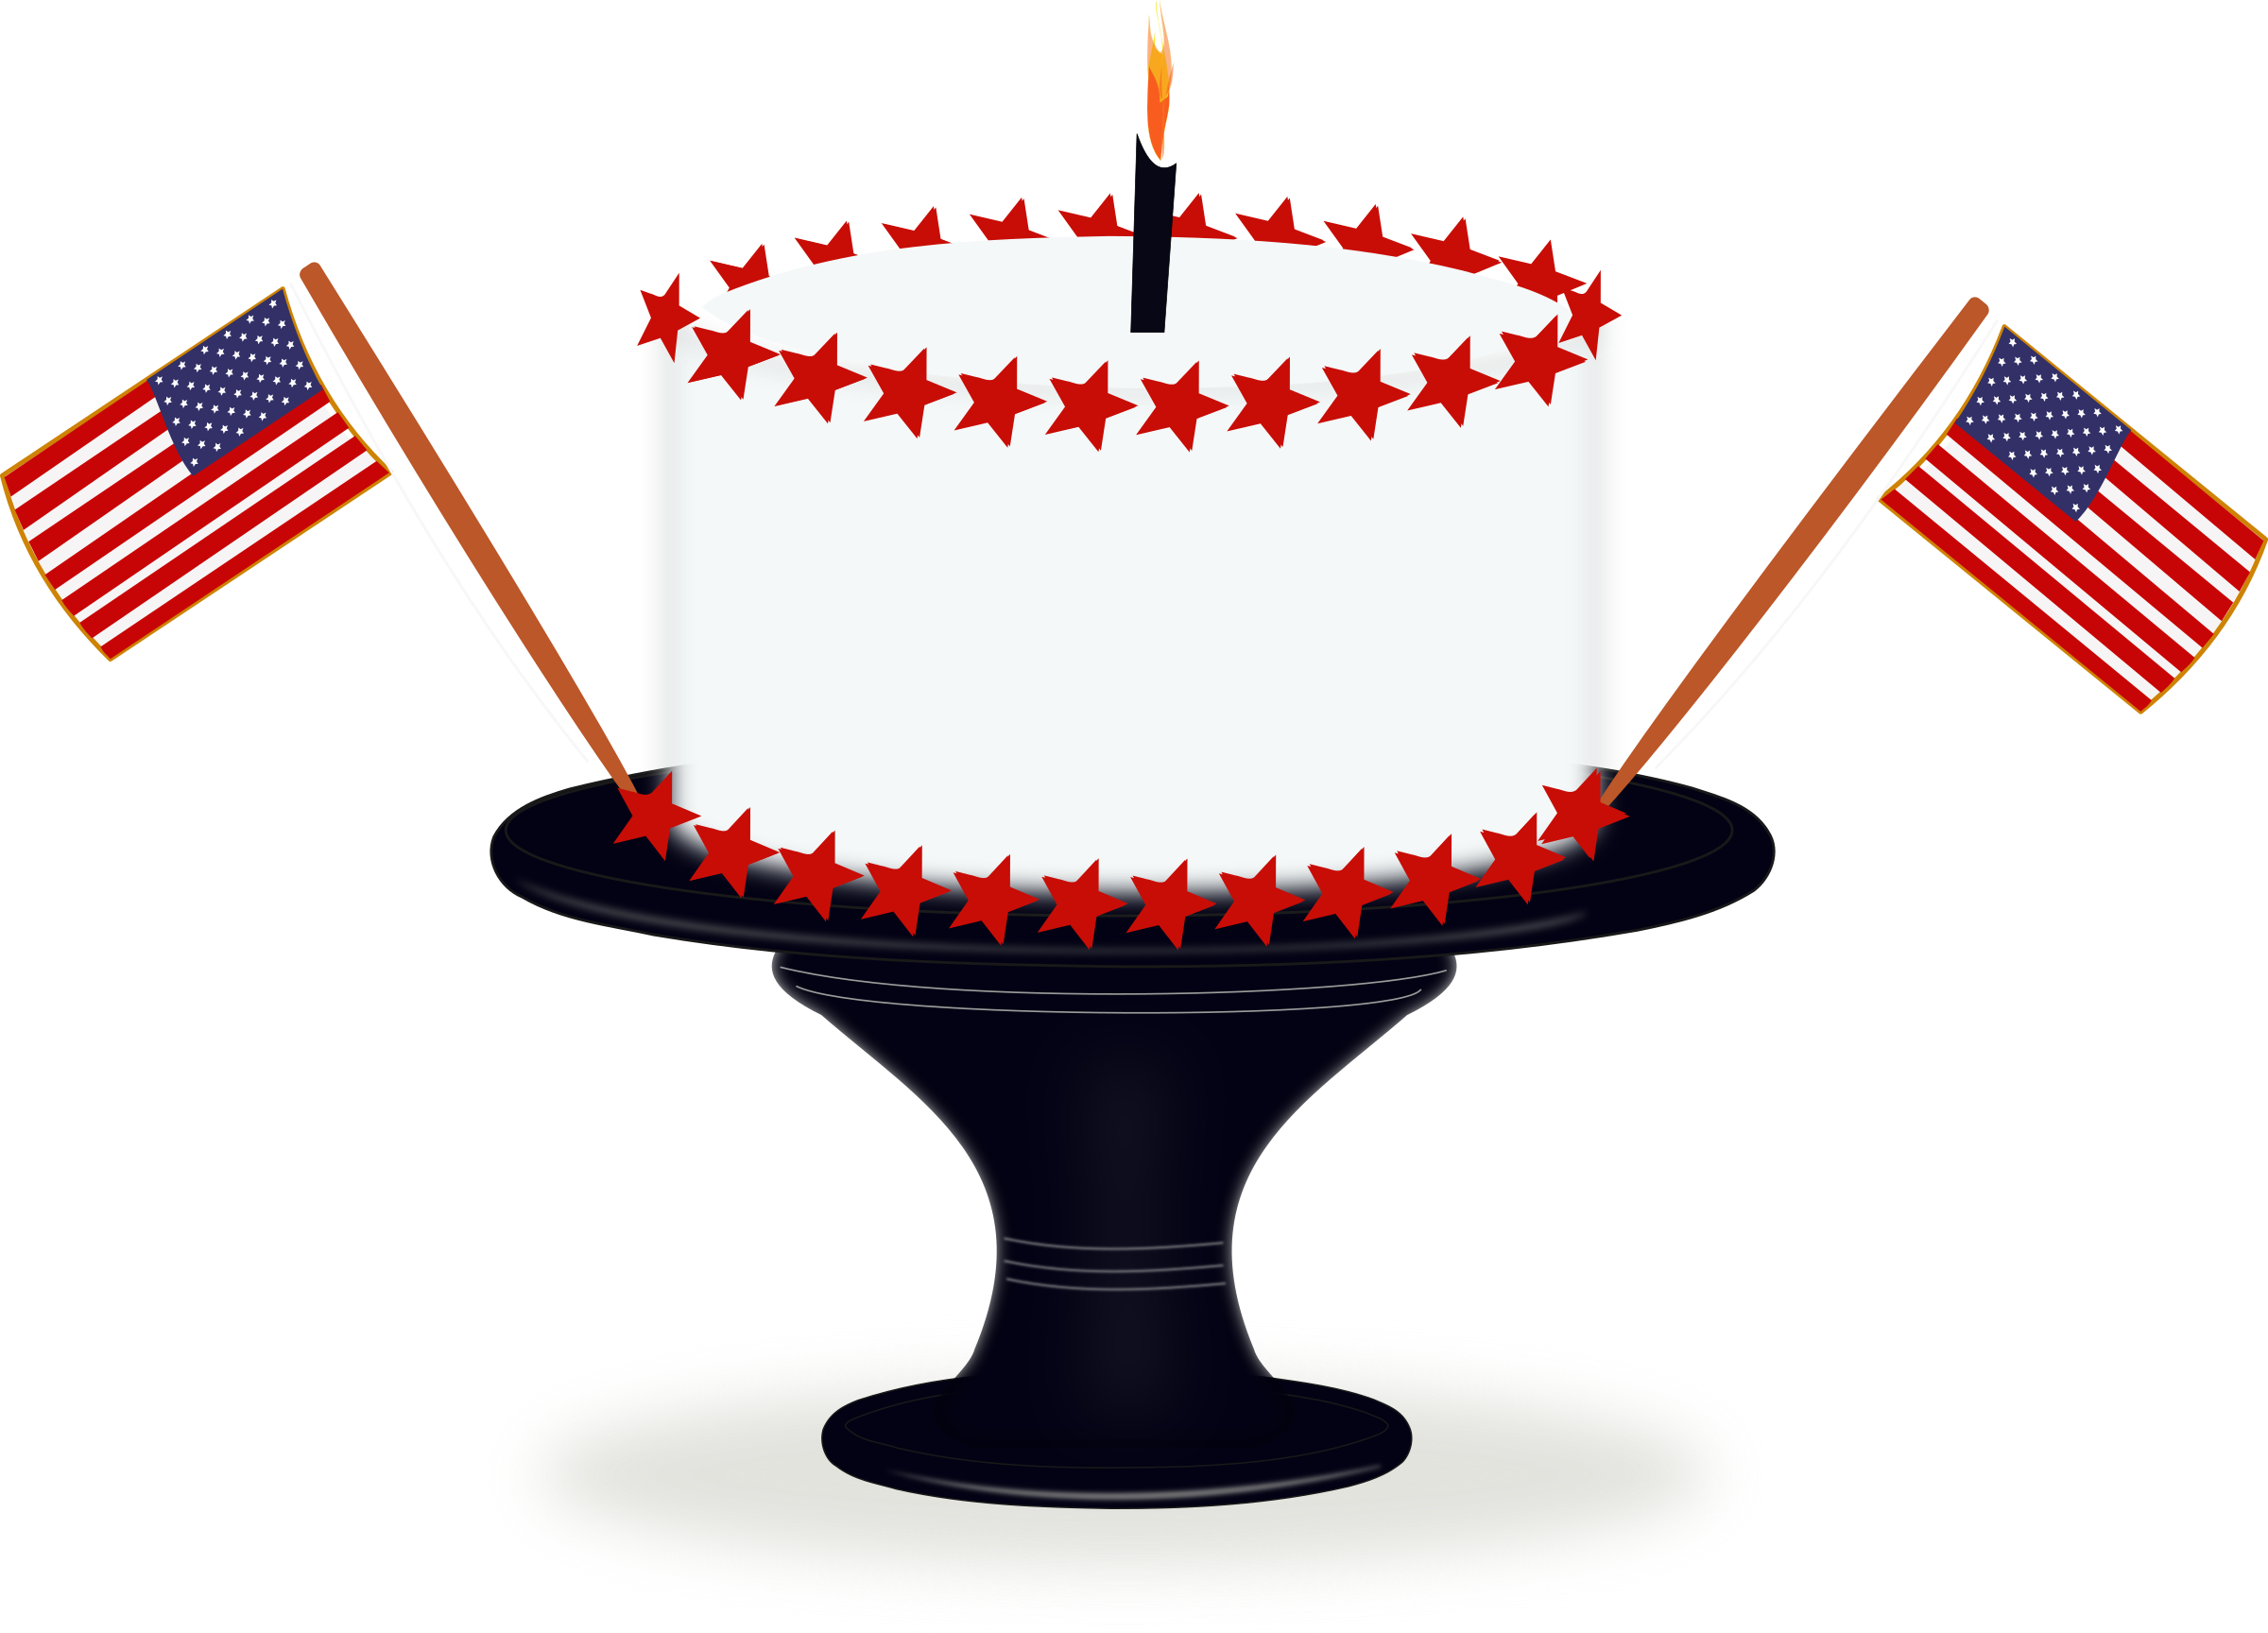 image freeuse library 4th of clipart birthday. Happy america big image